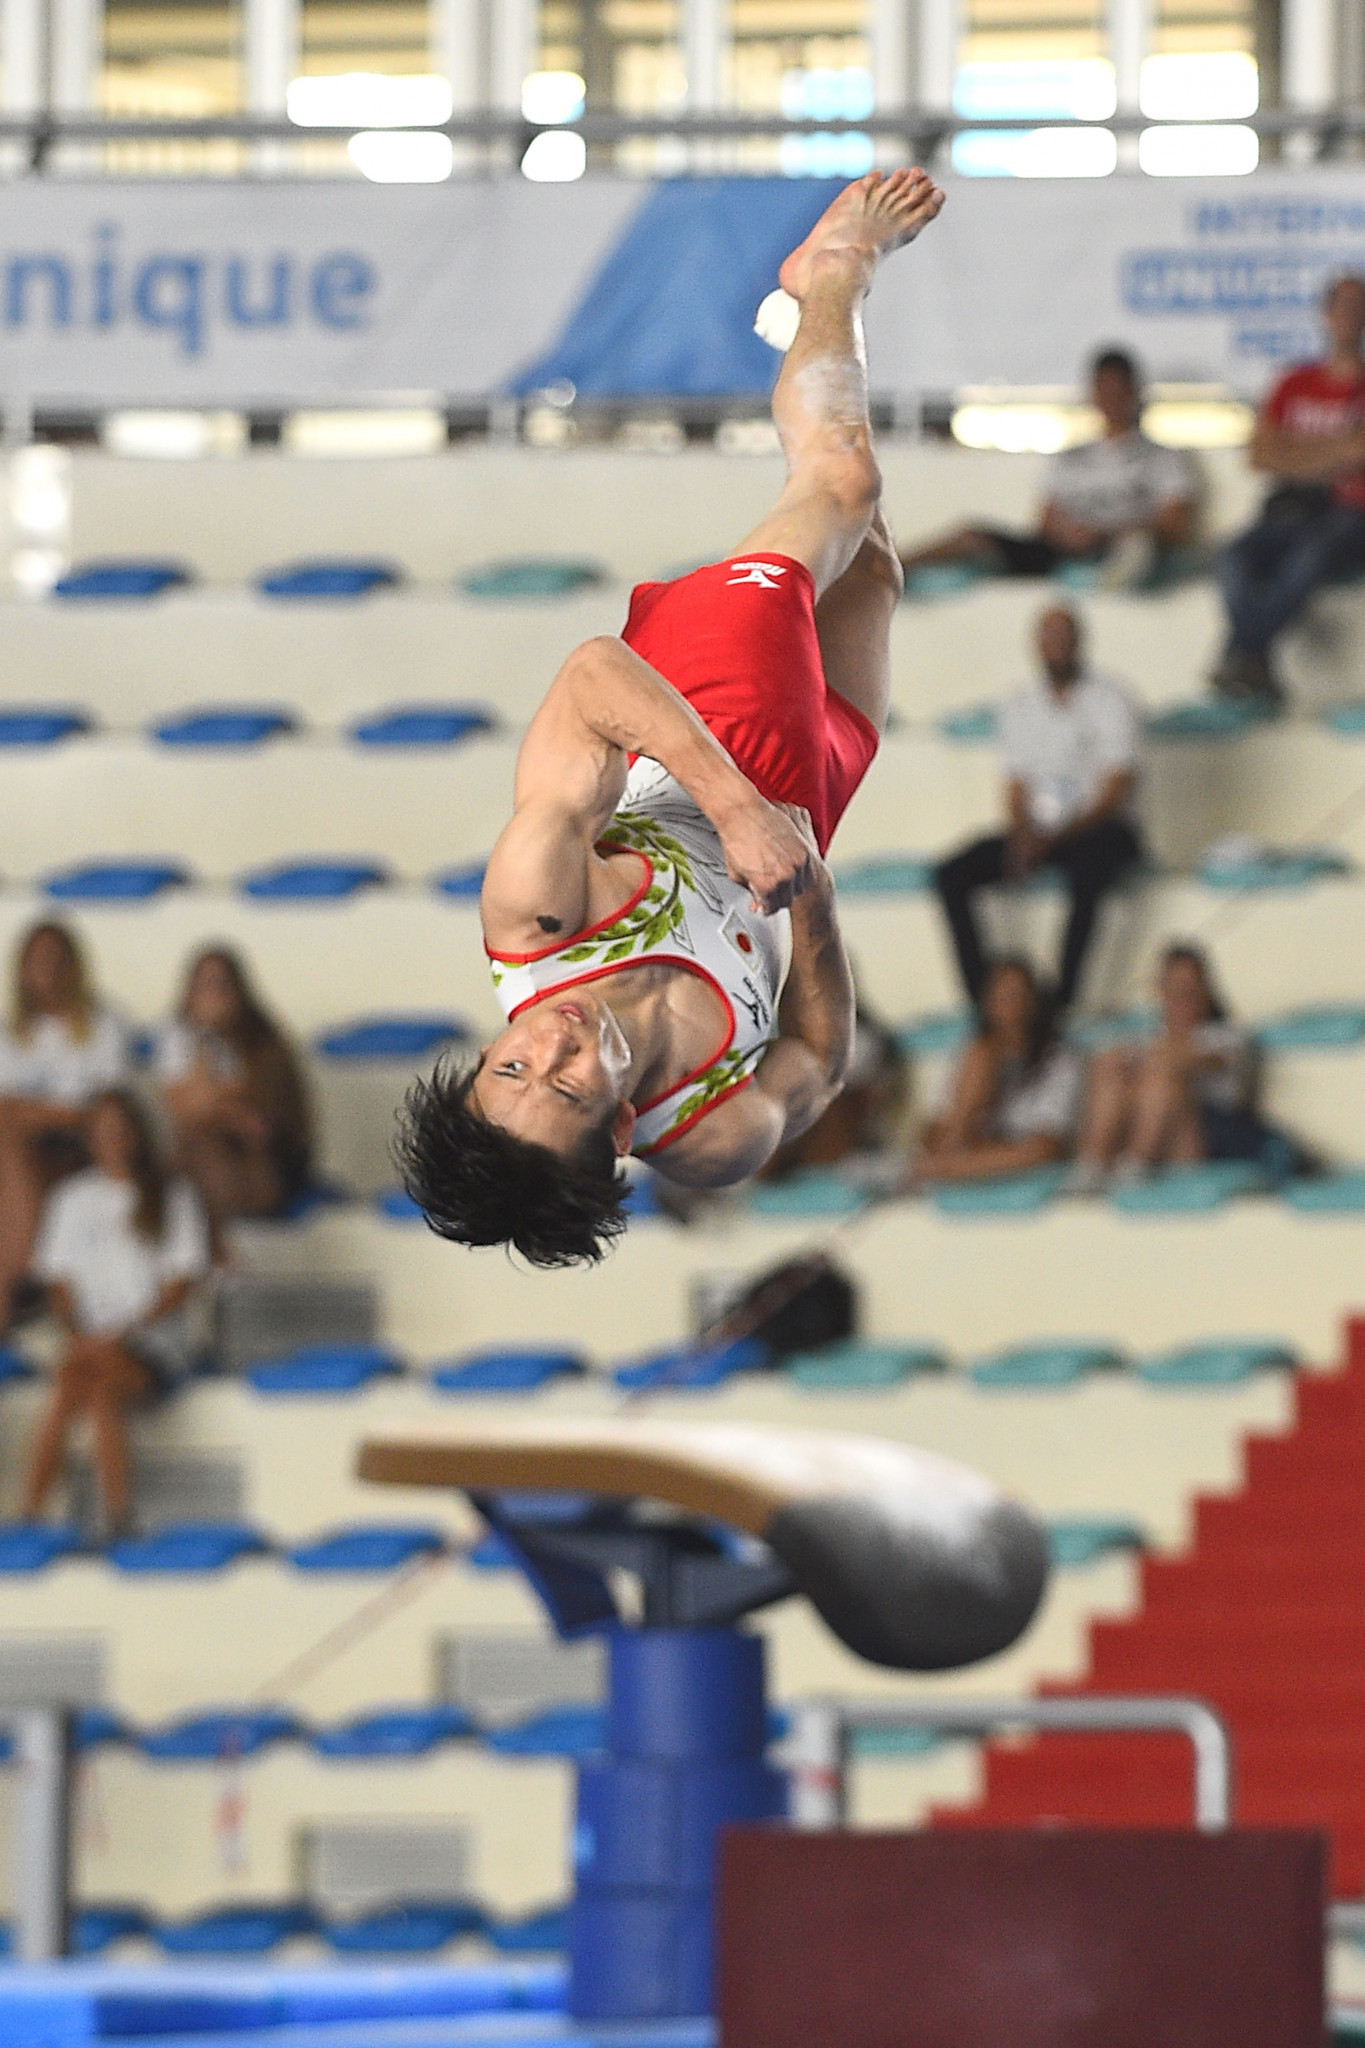 Kazuma Kaya of Japan impressed the judges as he tumbled his way to the men's all-around artistic gymnastics title ©Naples 2019